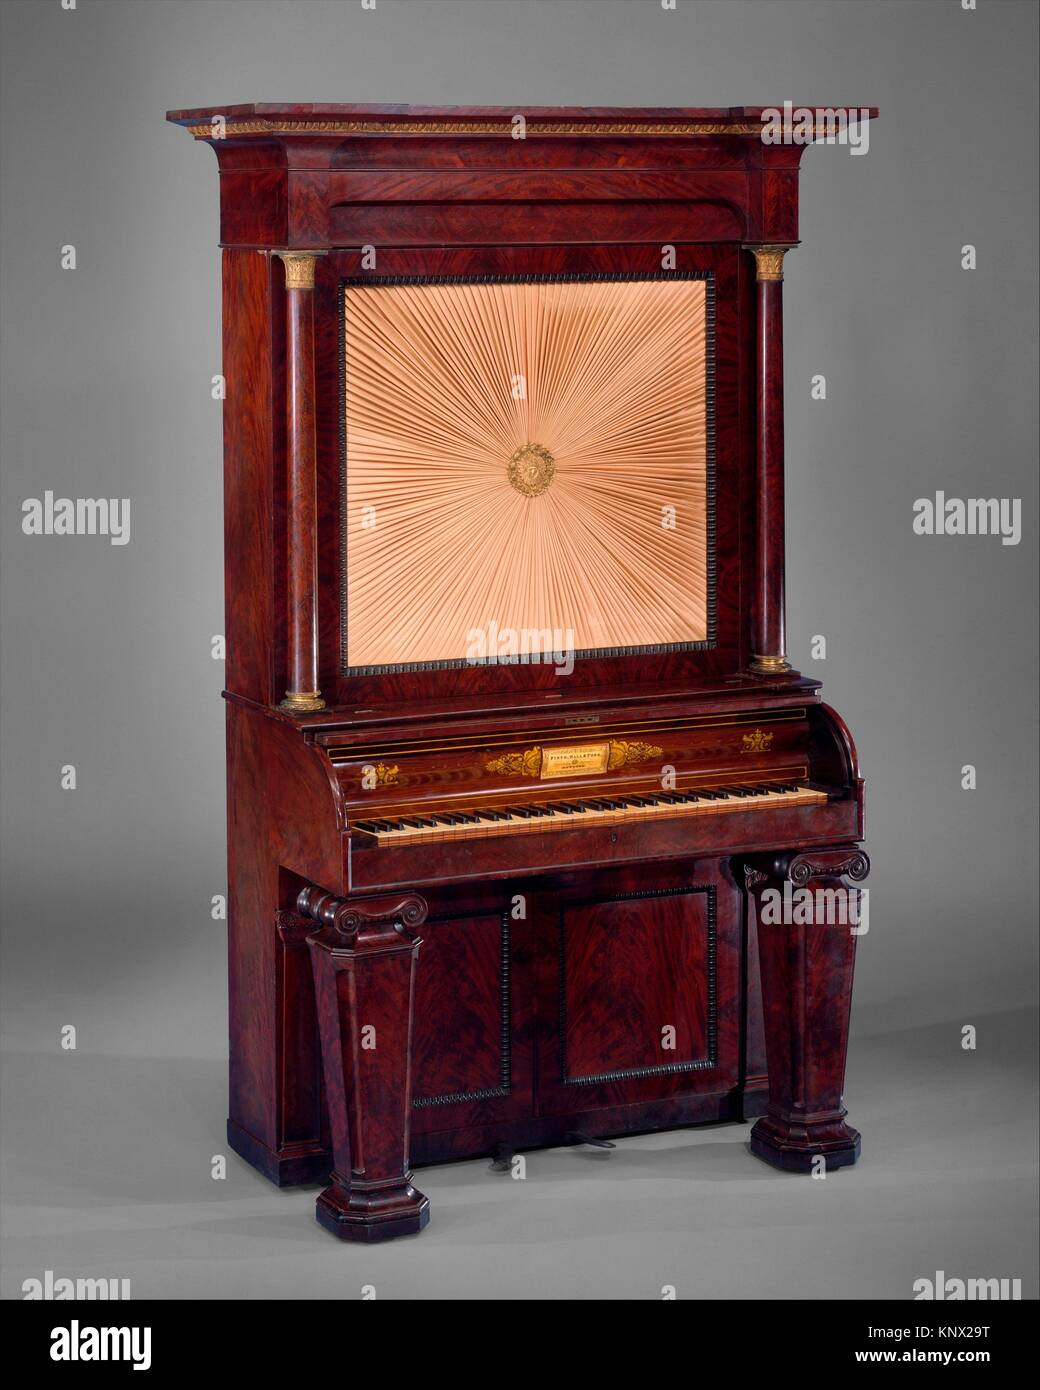 Upright Cabinet Piano. Maker: Firth, Hall & Pond (American, New York); Date: 1835; Geography: New York, United States; Stock Photo